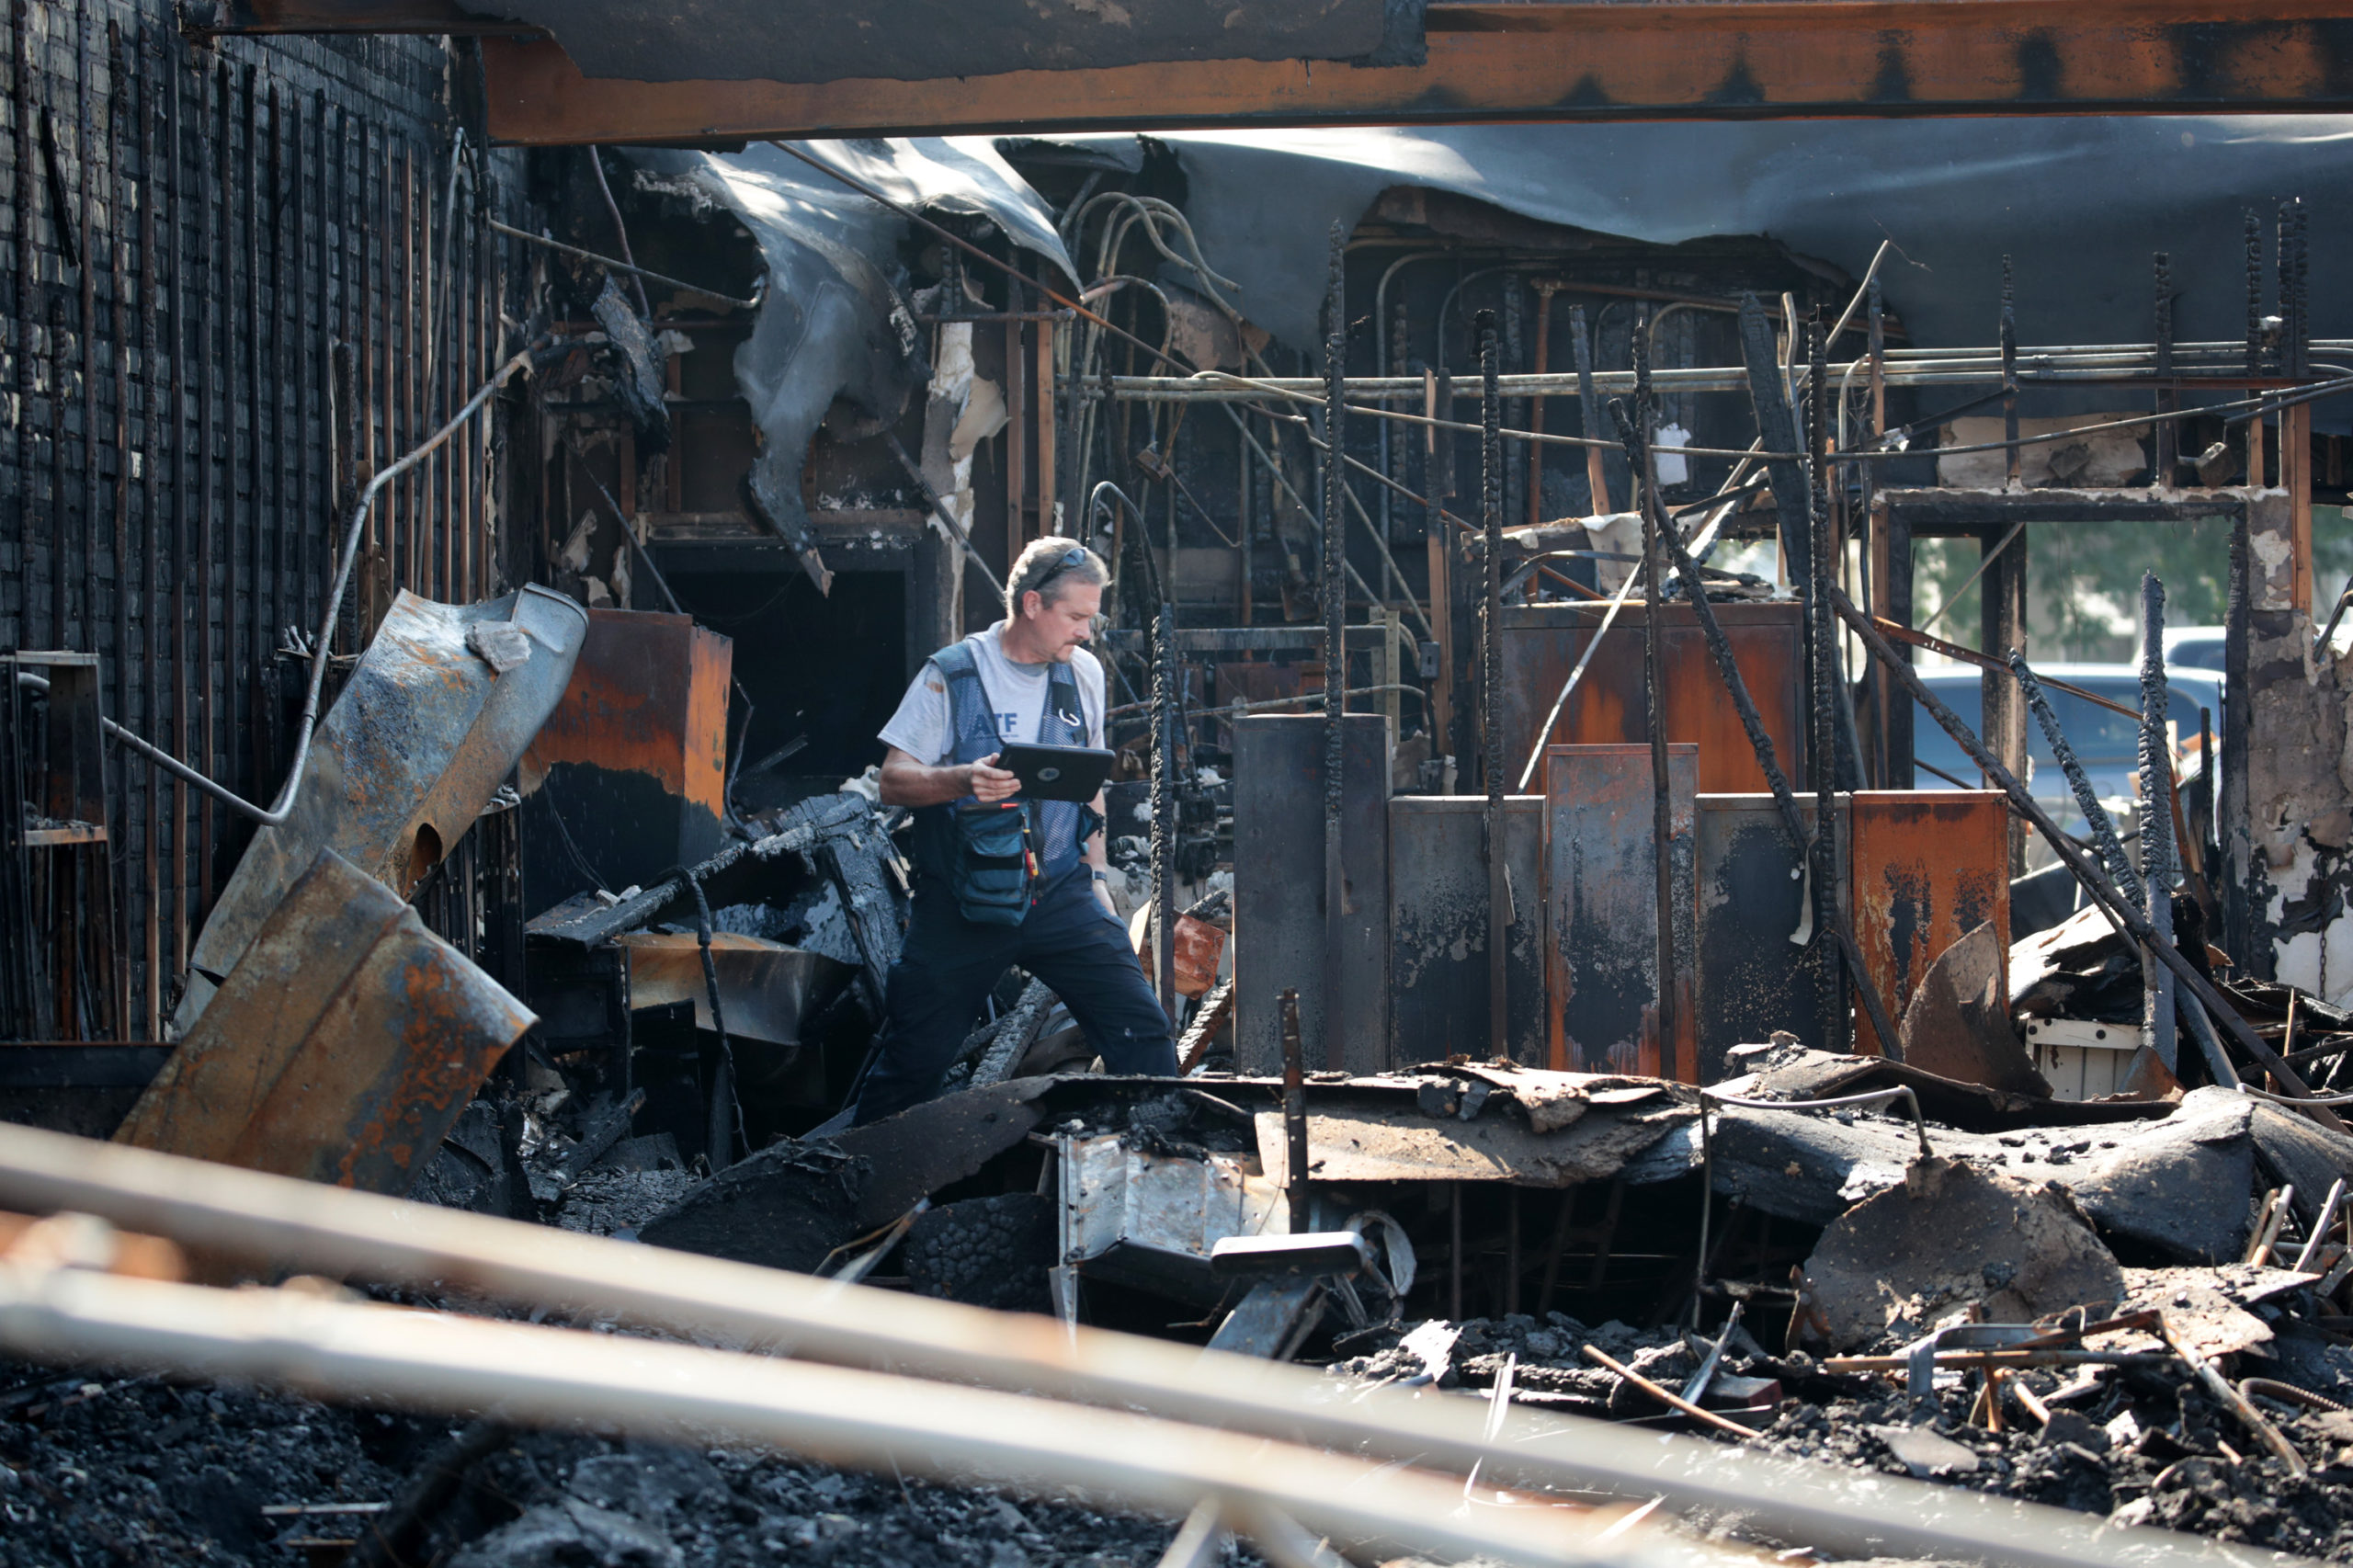 KENOSHA, WISCONSIN - AUGUST 28: An ATF agent collects evidence in a burned out store that was destroyed during recent rioting following the shooting of Jacob Blake on August 28, 2020 in Kenosha, Wisconsin. Blake remains in the hospital after being shot seven times in the back in front of his three children by a police officer. (Photo by Scott Olson/Getty Images)